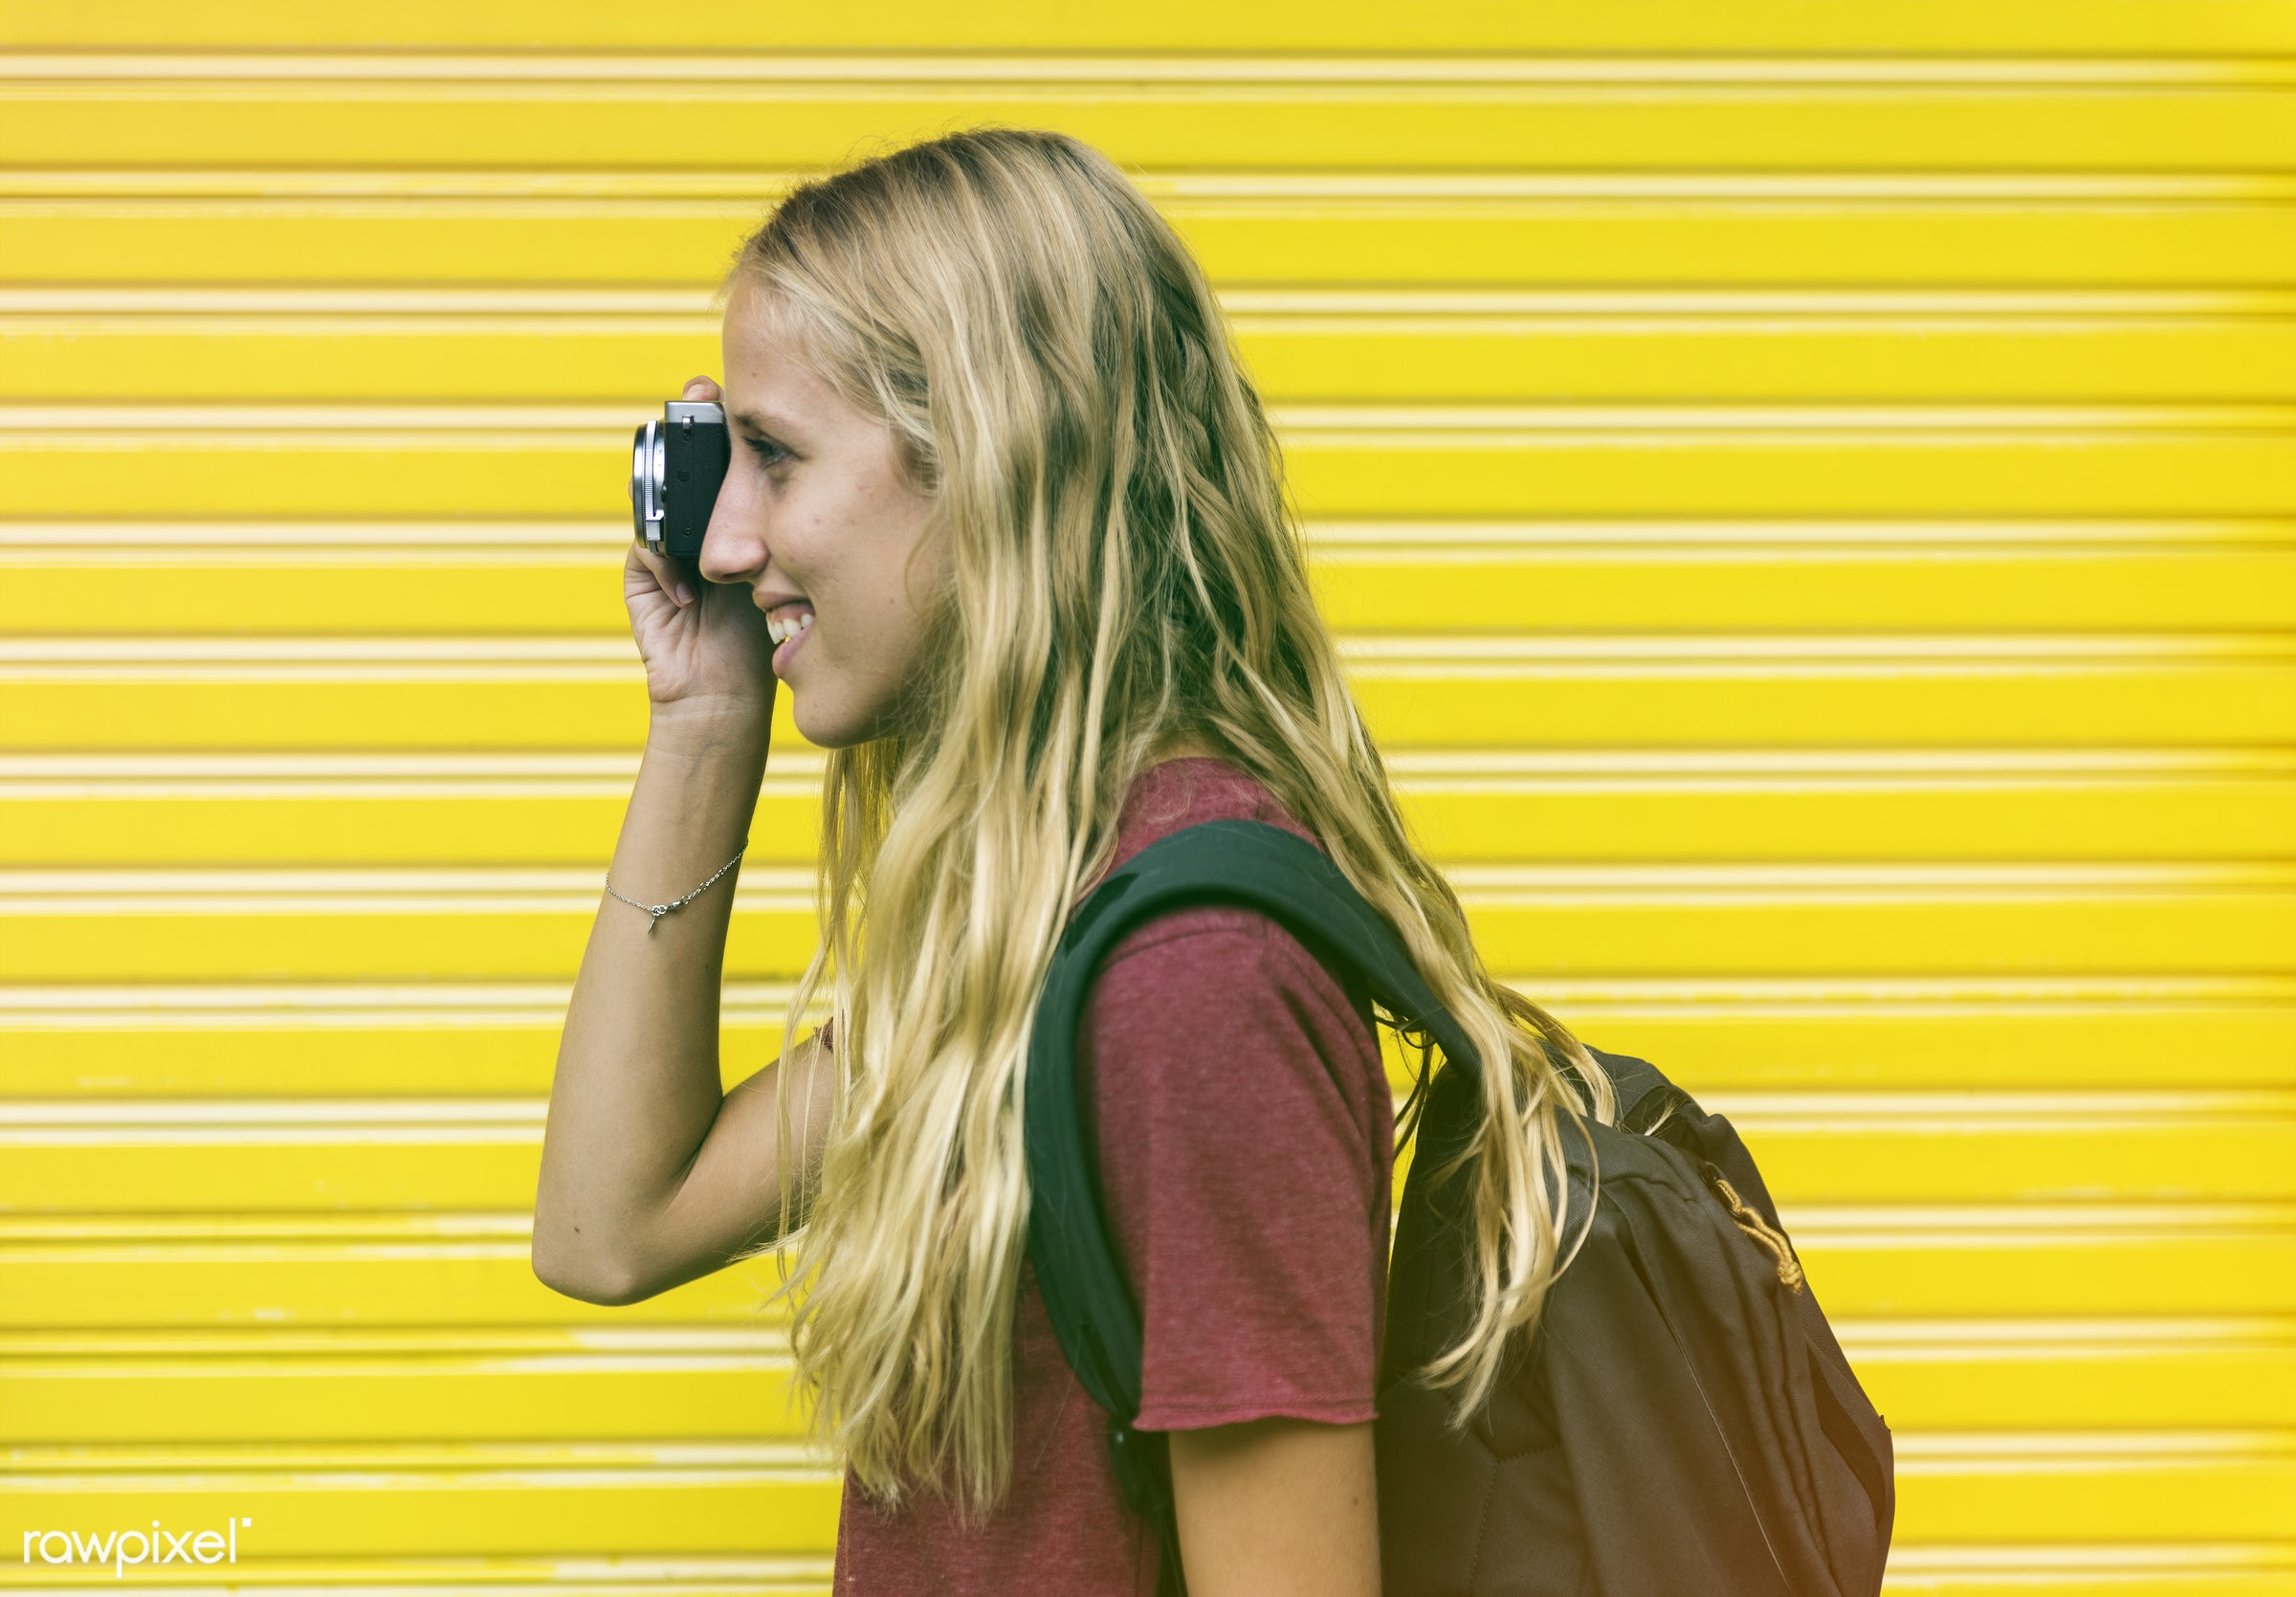 backpackers, faded, travel, vibrant, yellow, people, wanderlust, caucasian, woman, blend, smile, cheerful, light, smiling,...